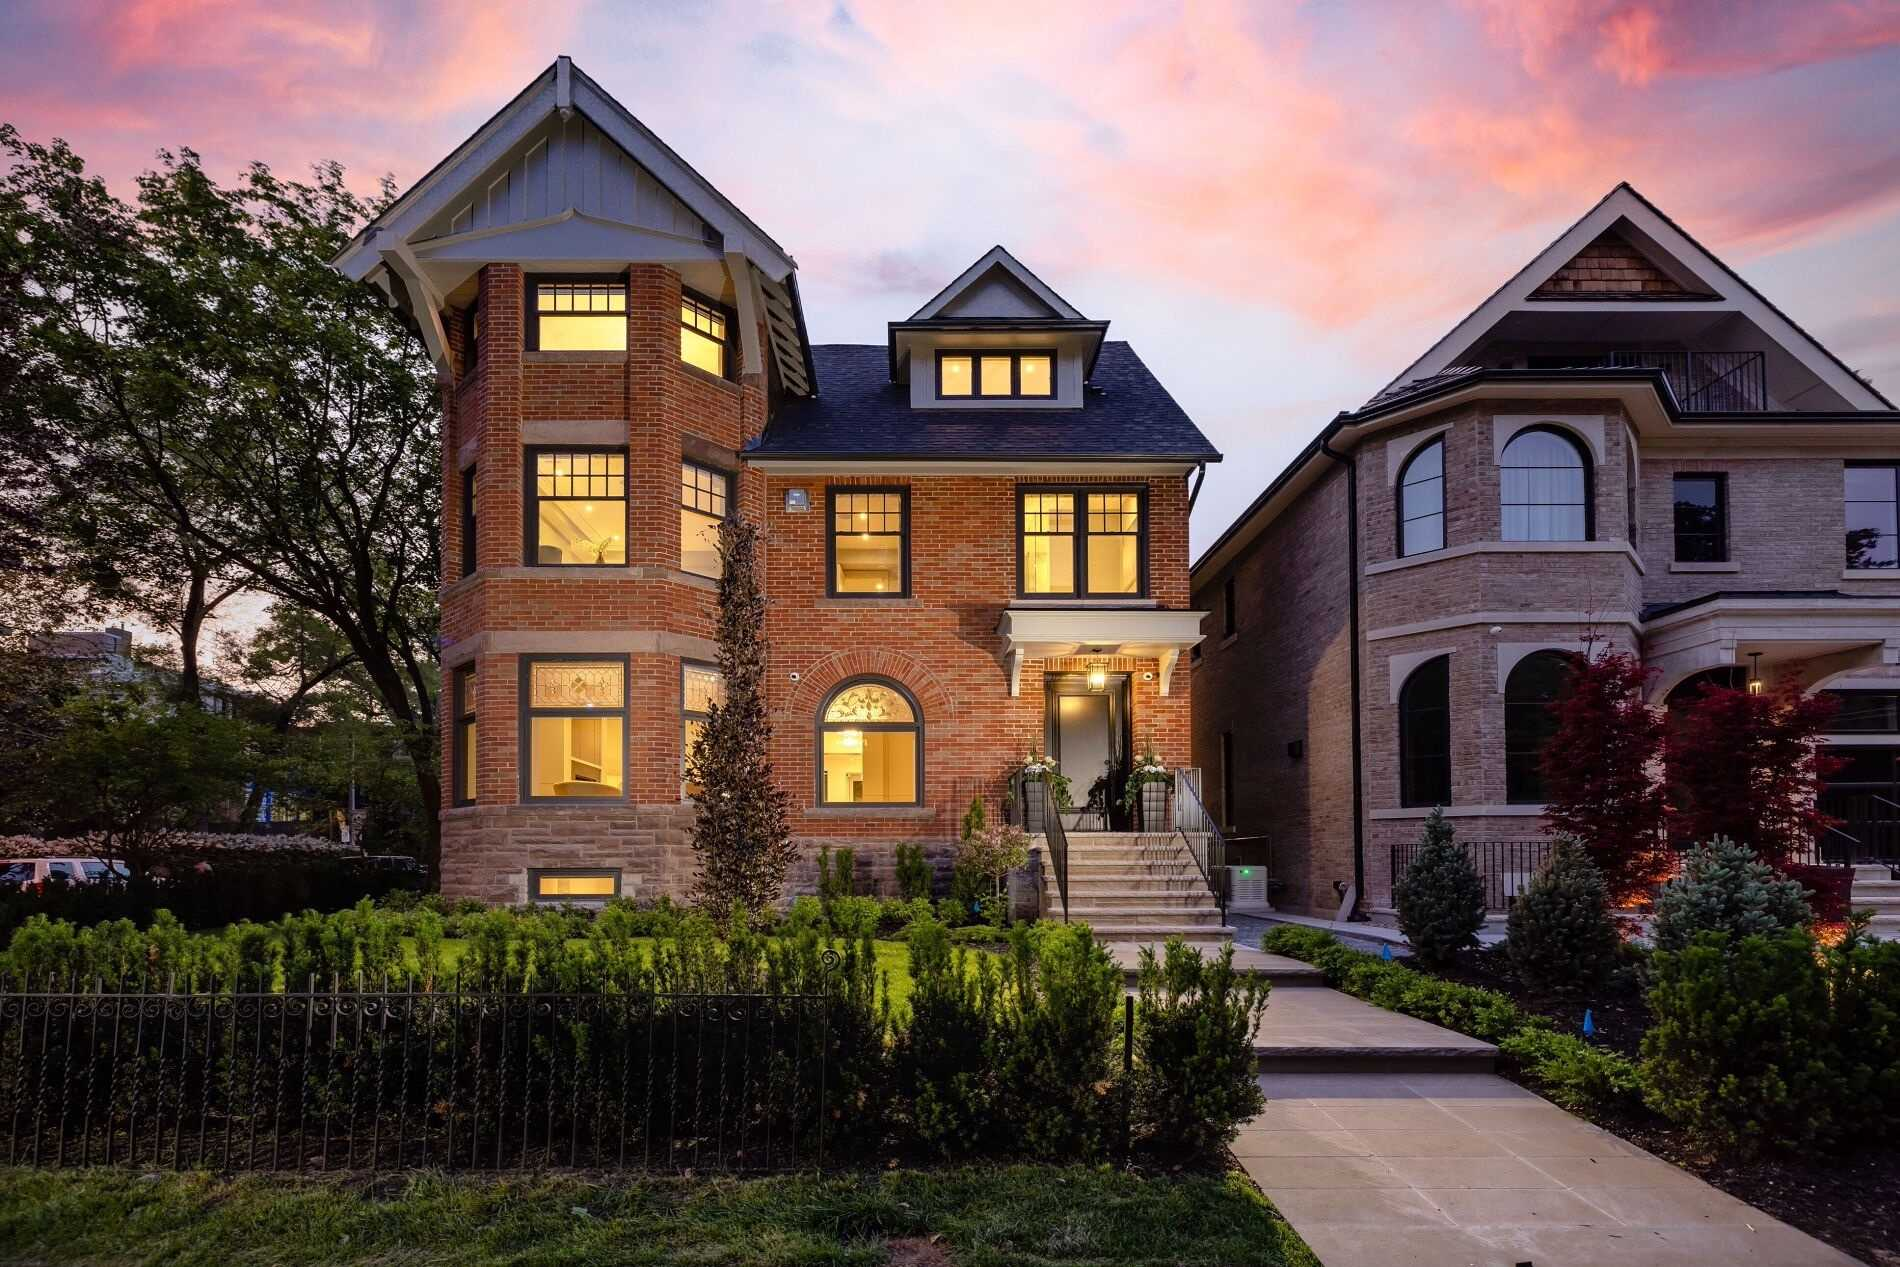 70 Lowther Ave, Toronto, Ontario M5R1C7, 5 Bedrooms Bedrooms, 9 Rooms Rooms,7 BathroomsBathrooms,Detached,For Sale,Lowther,C5365768